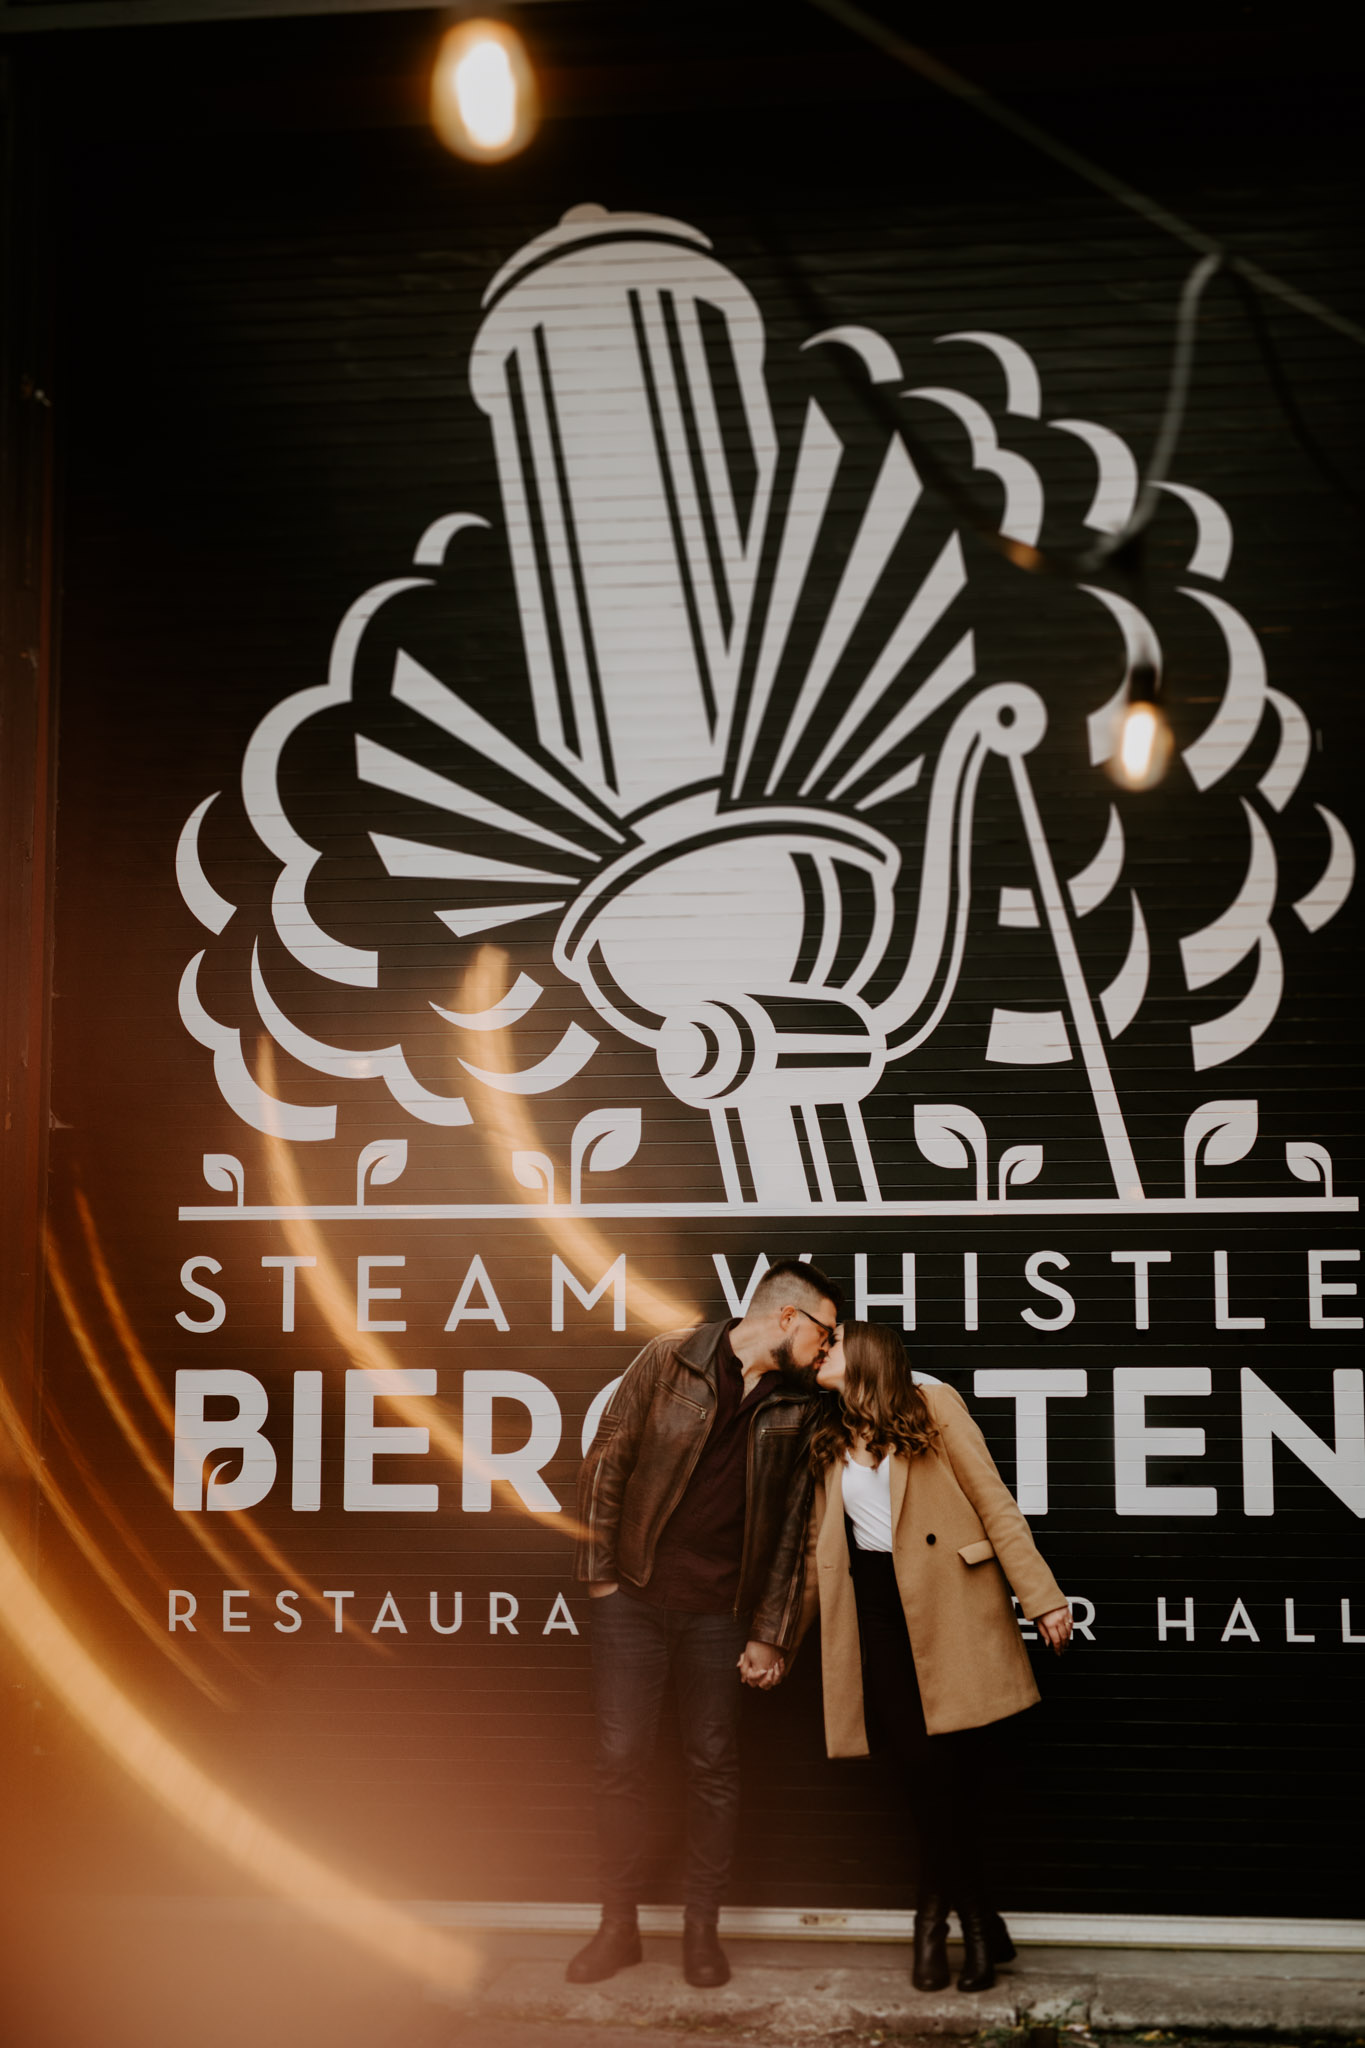 SteamWhistle Brewery Engagement - Kissing couple with lens flare